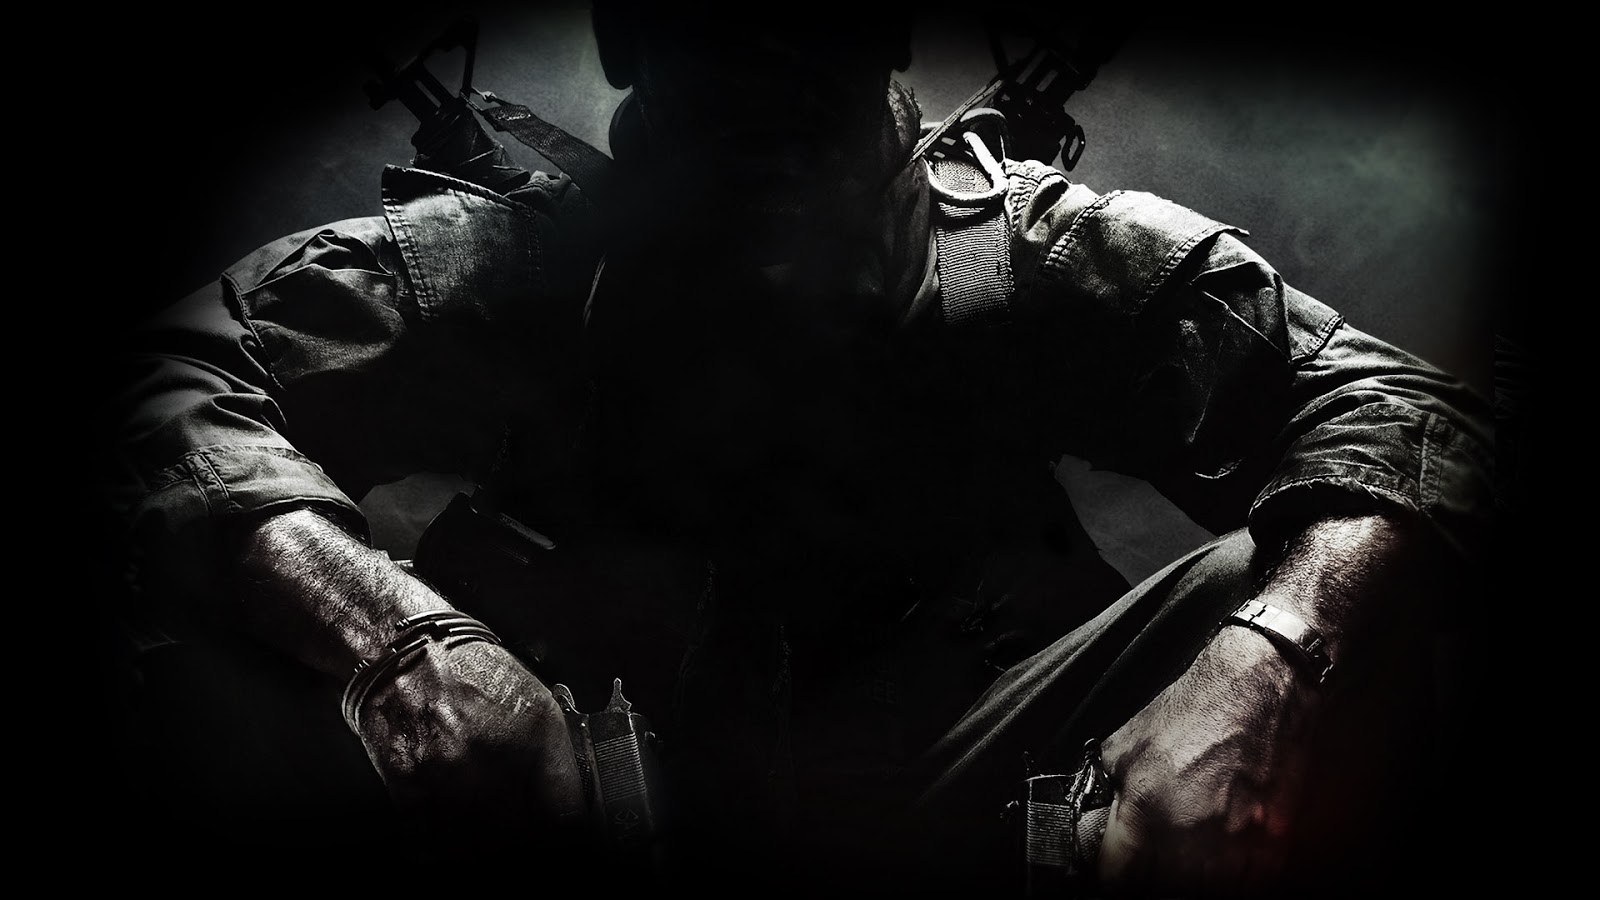 Call-Of-Duty-Black-Ops-II-HD-Backgrounds-wallpaper-wp3403653